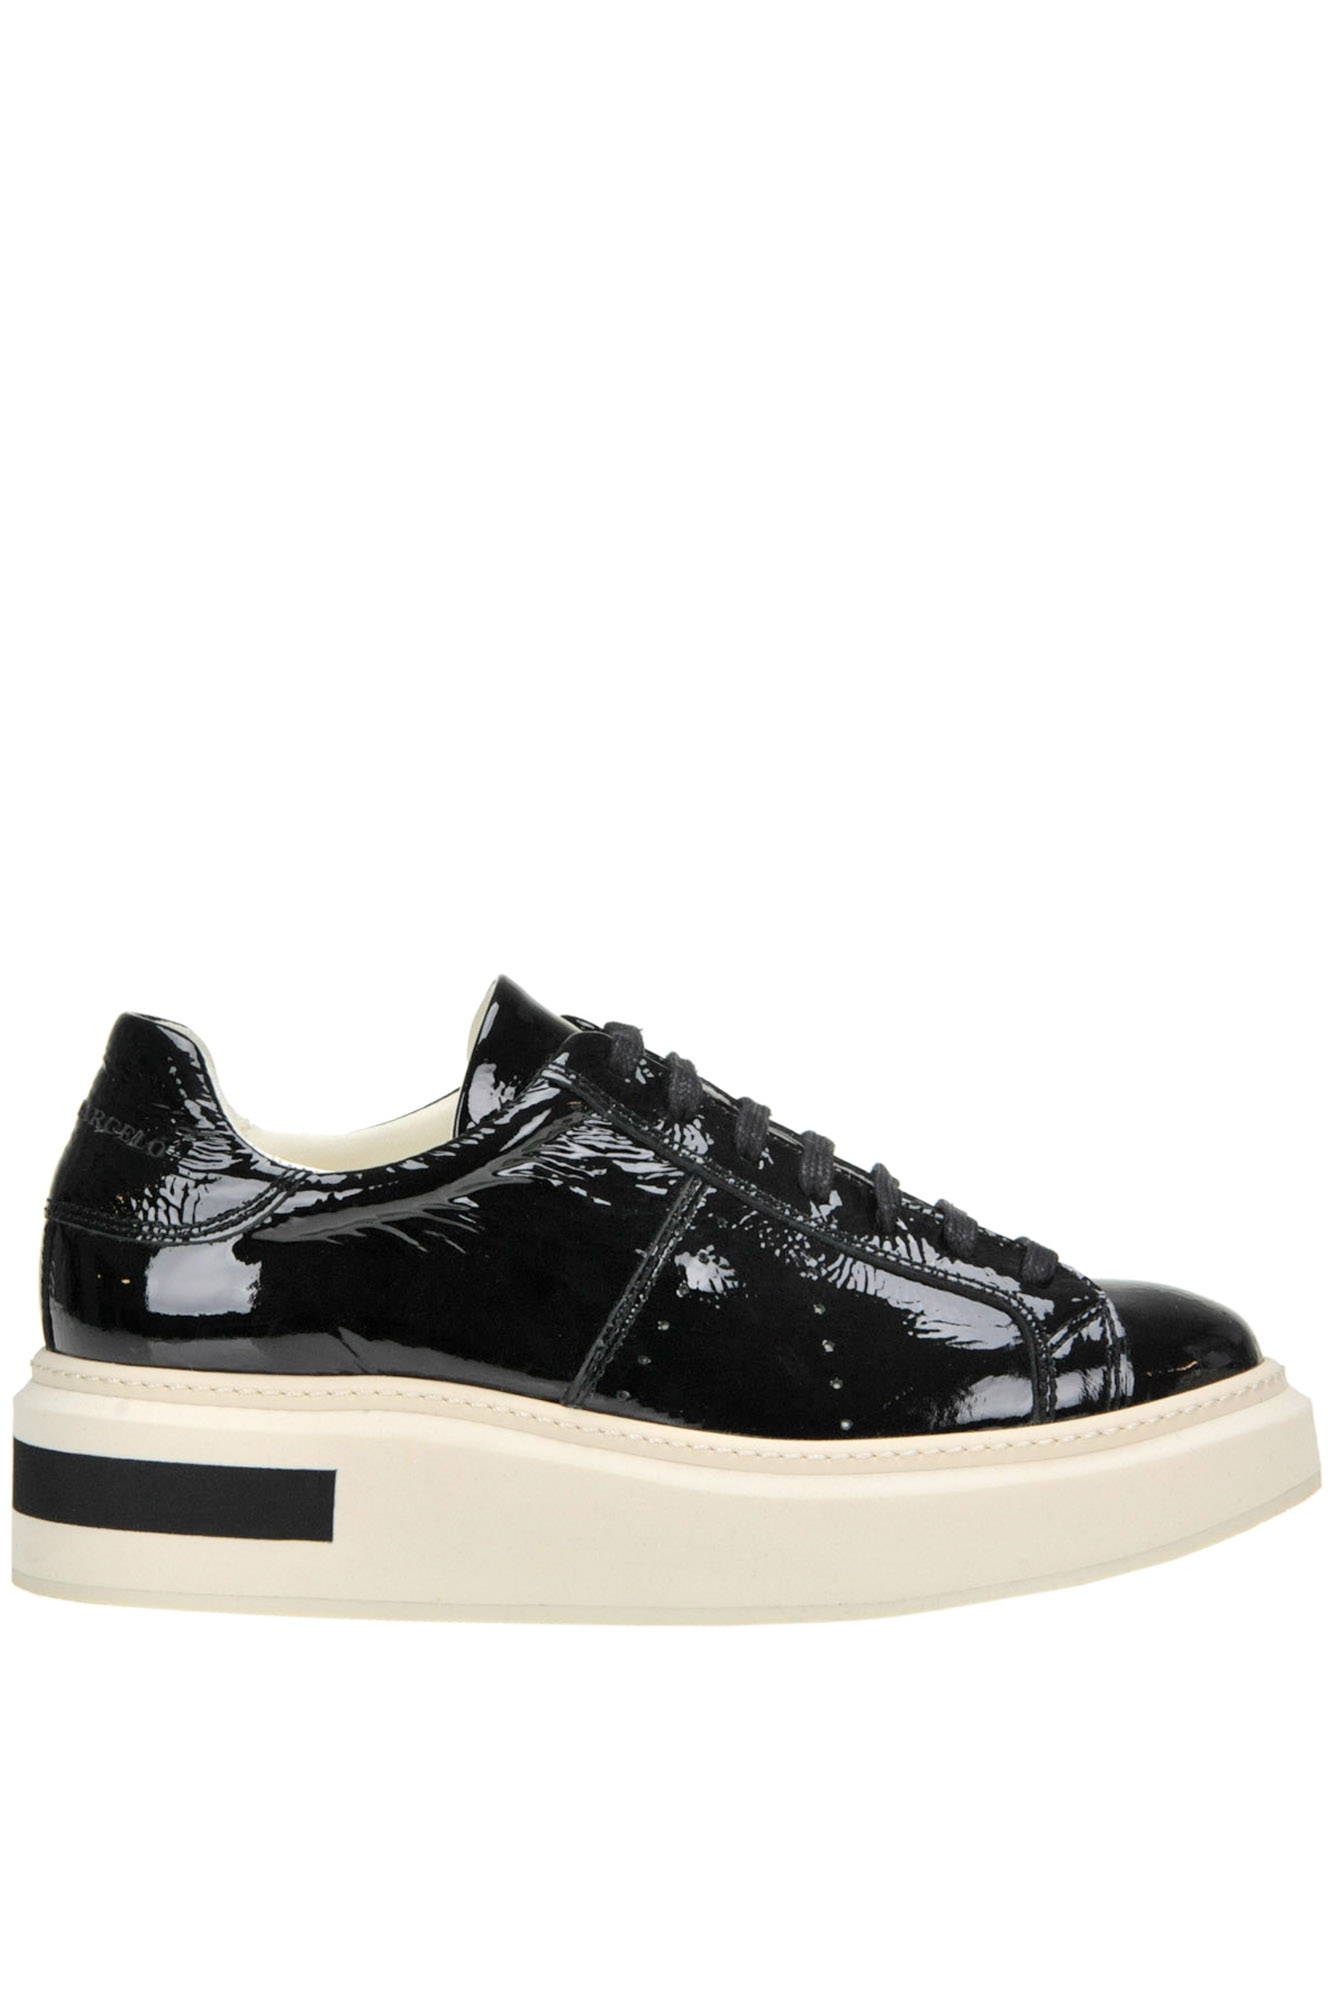 Mitte Round Sneakers in Black